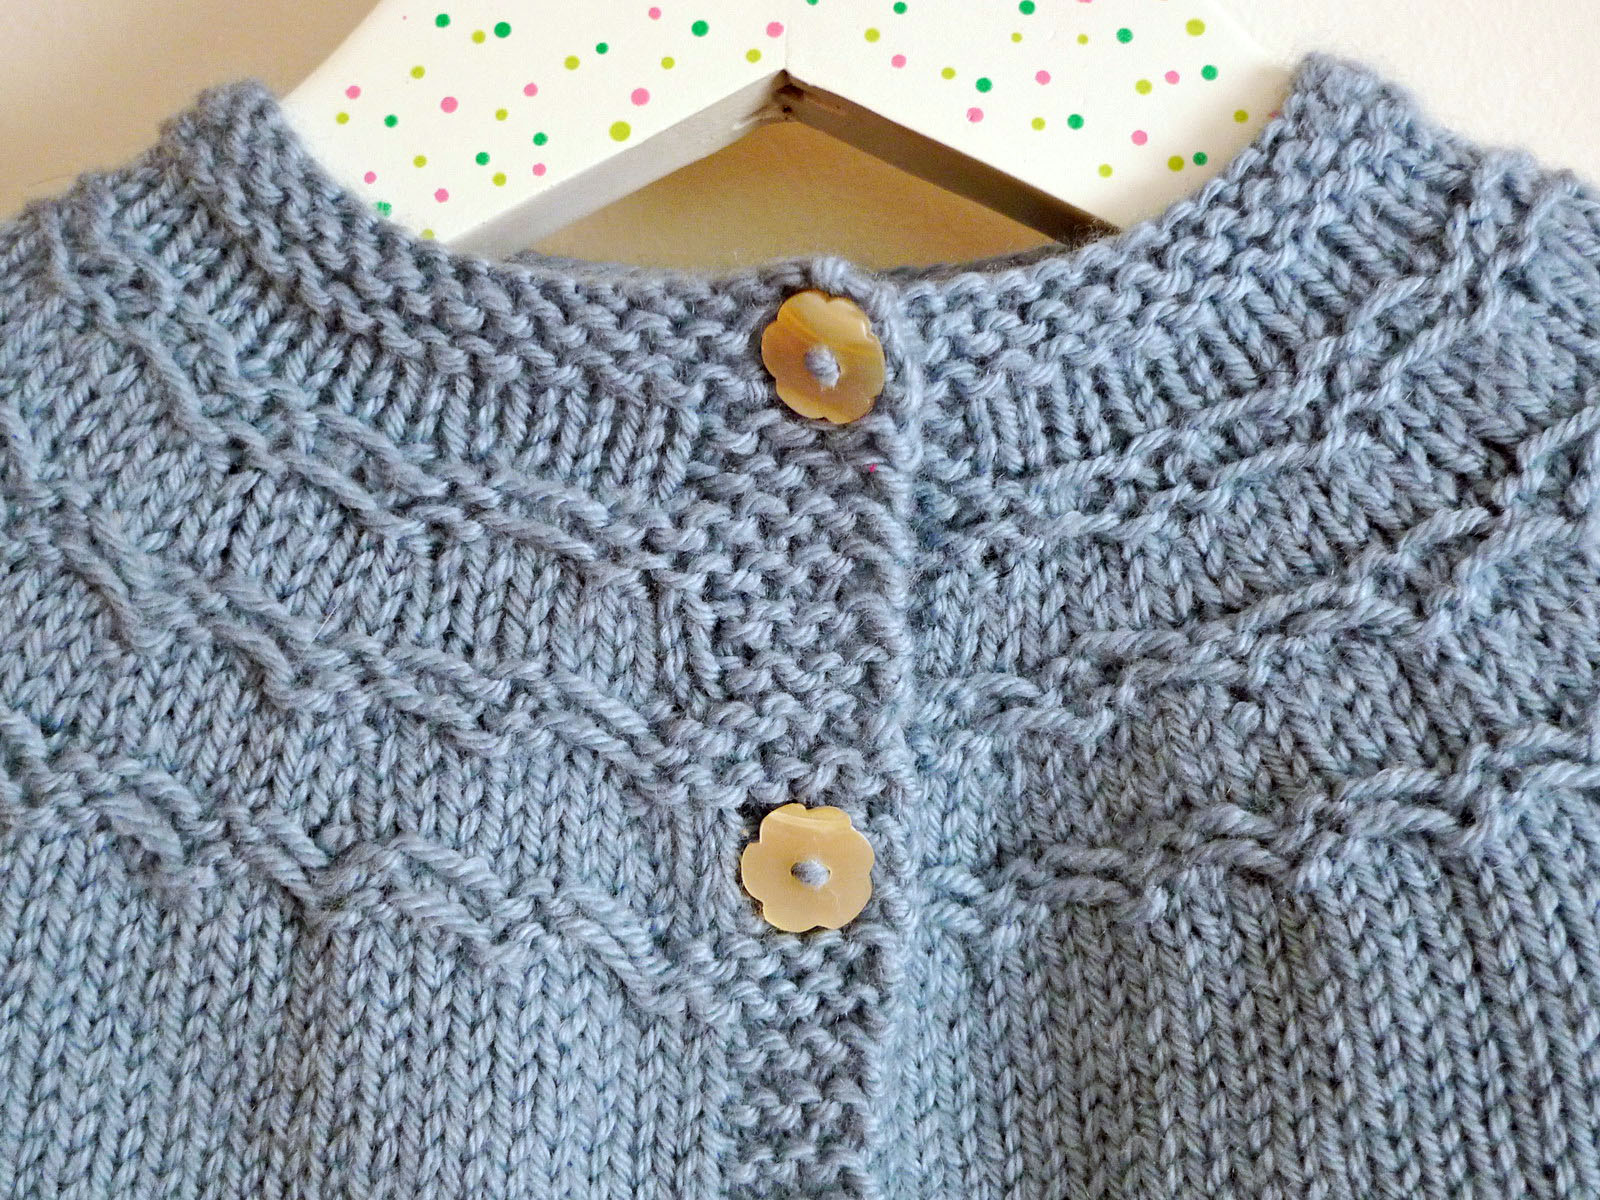 Knitting Pattern For Baby Seamless Yoked Sweater : Chocolate a chuva: smocked baby cardi + cabled booties